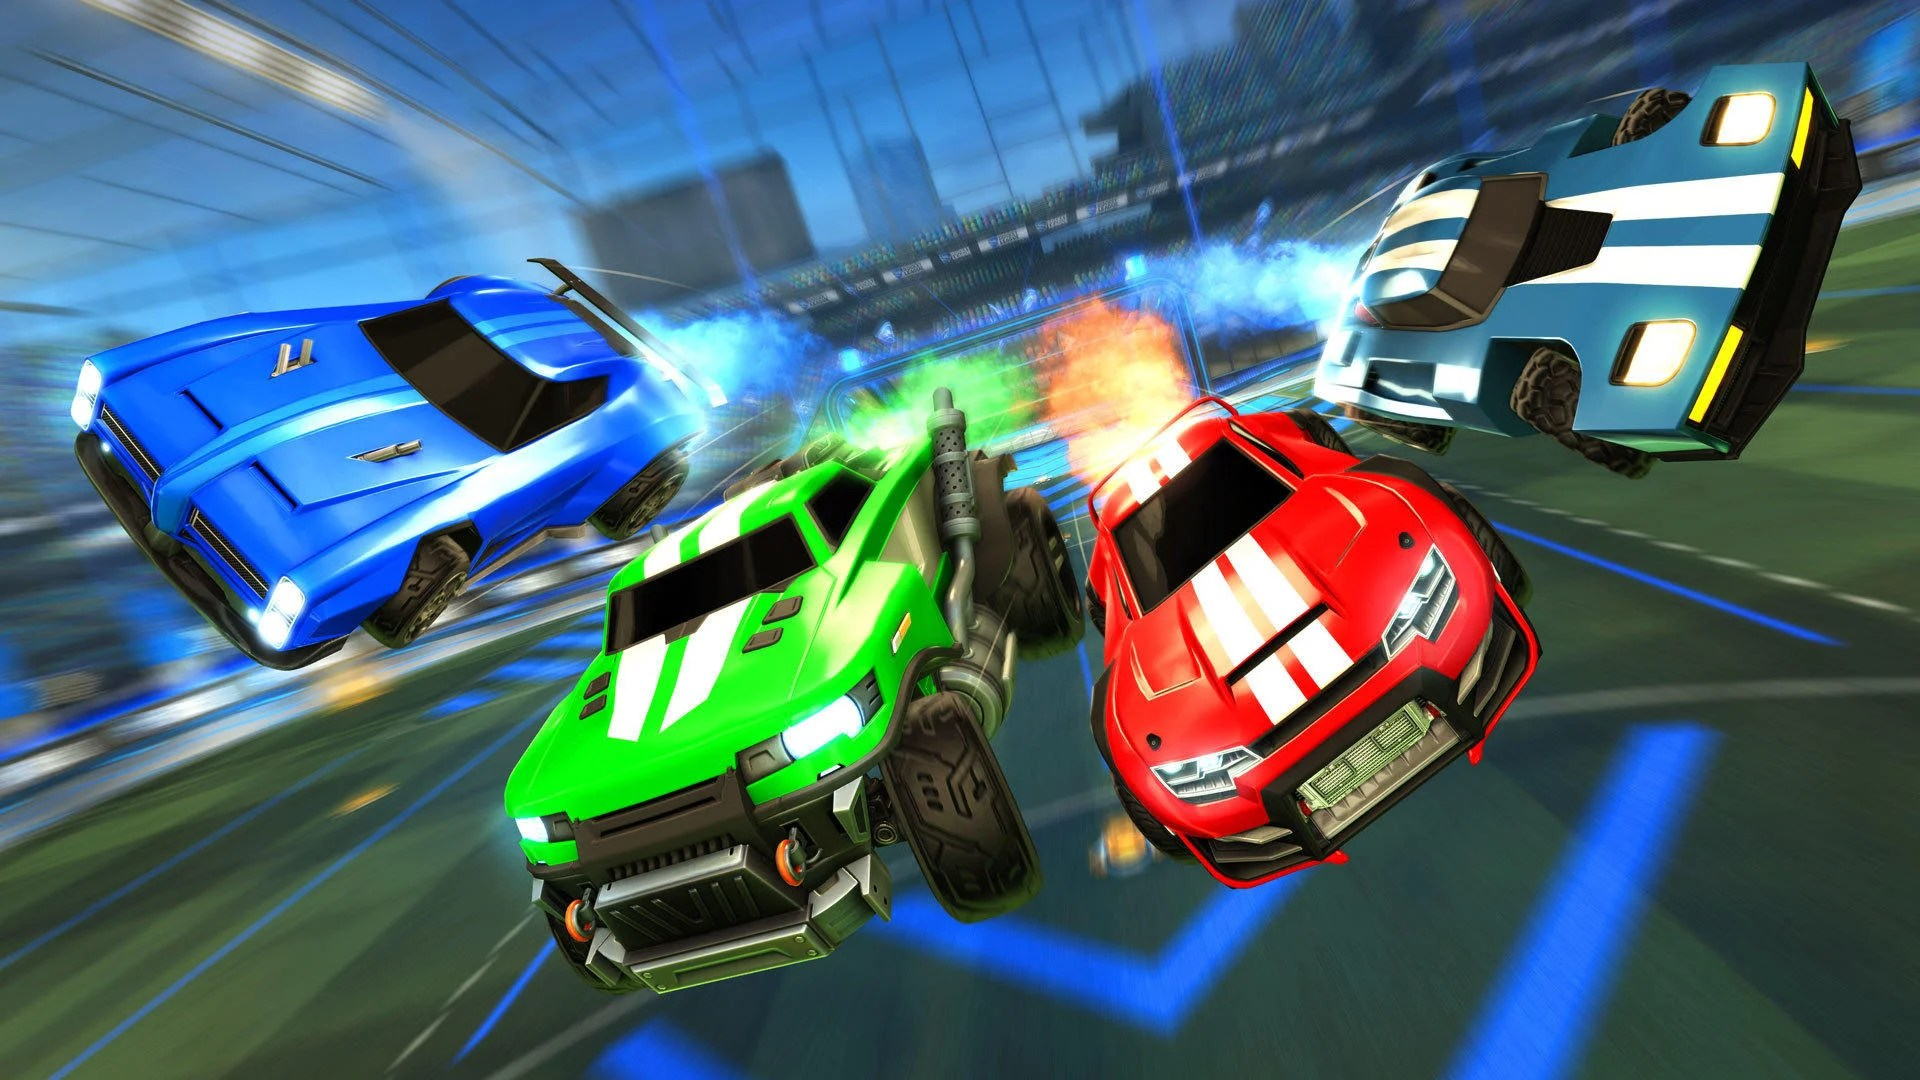 Super Fast Car Wallpaper Patch Notes V1 58 Rocket League 174 Official Site